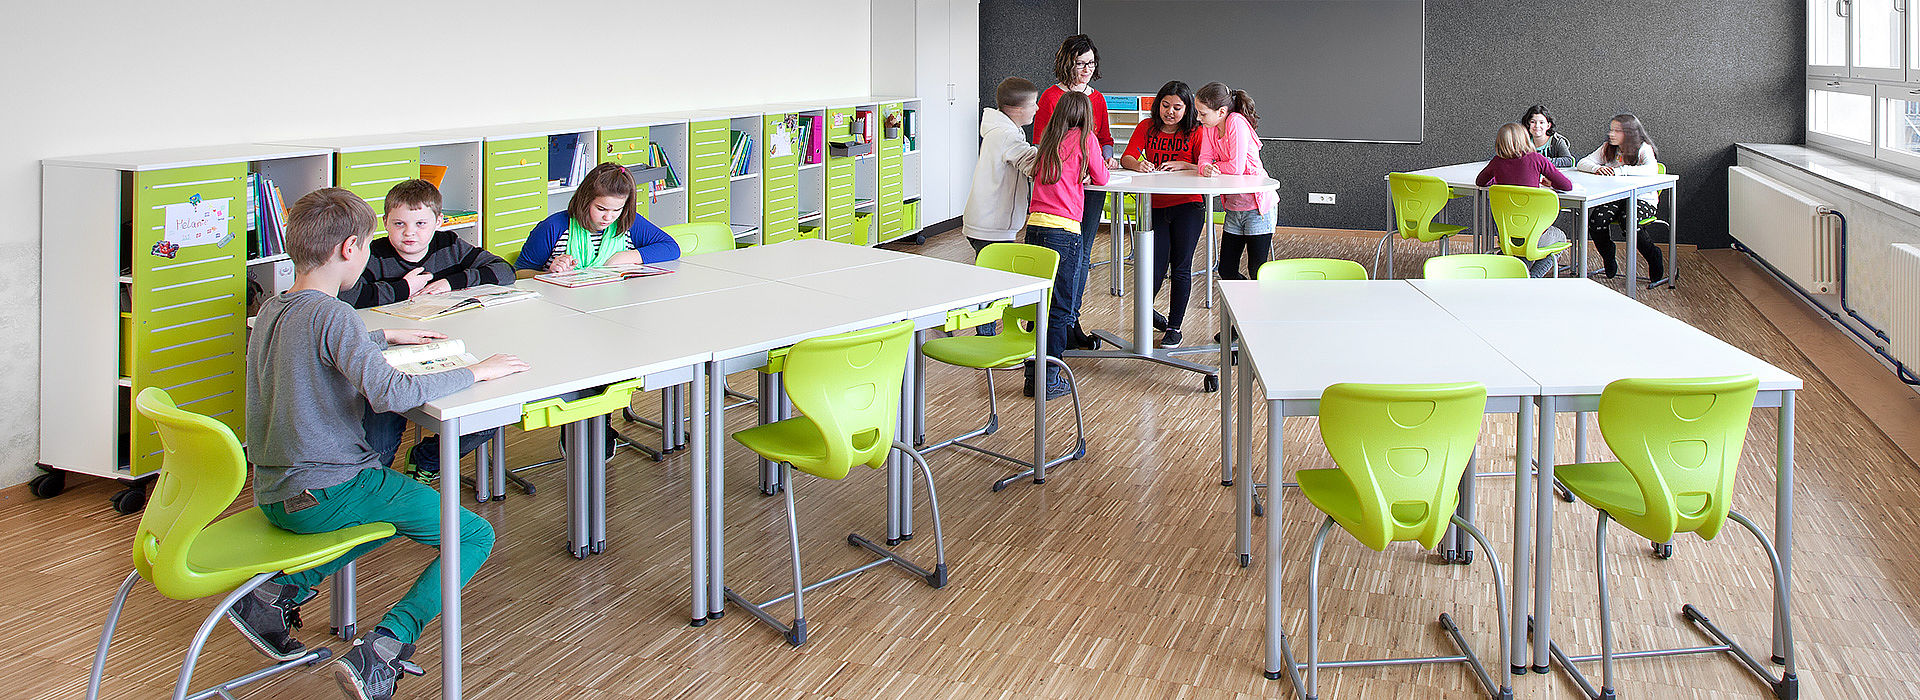 salle de classe flexible - interaction